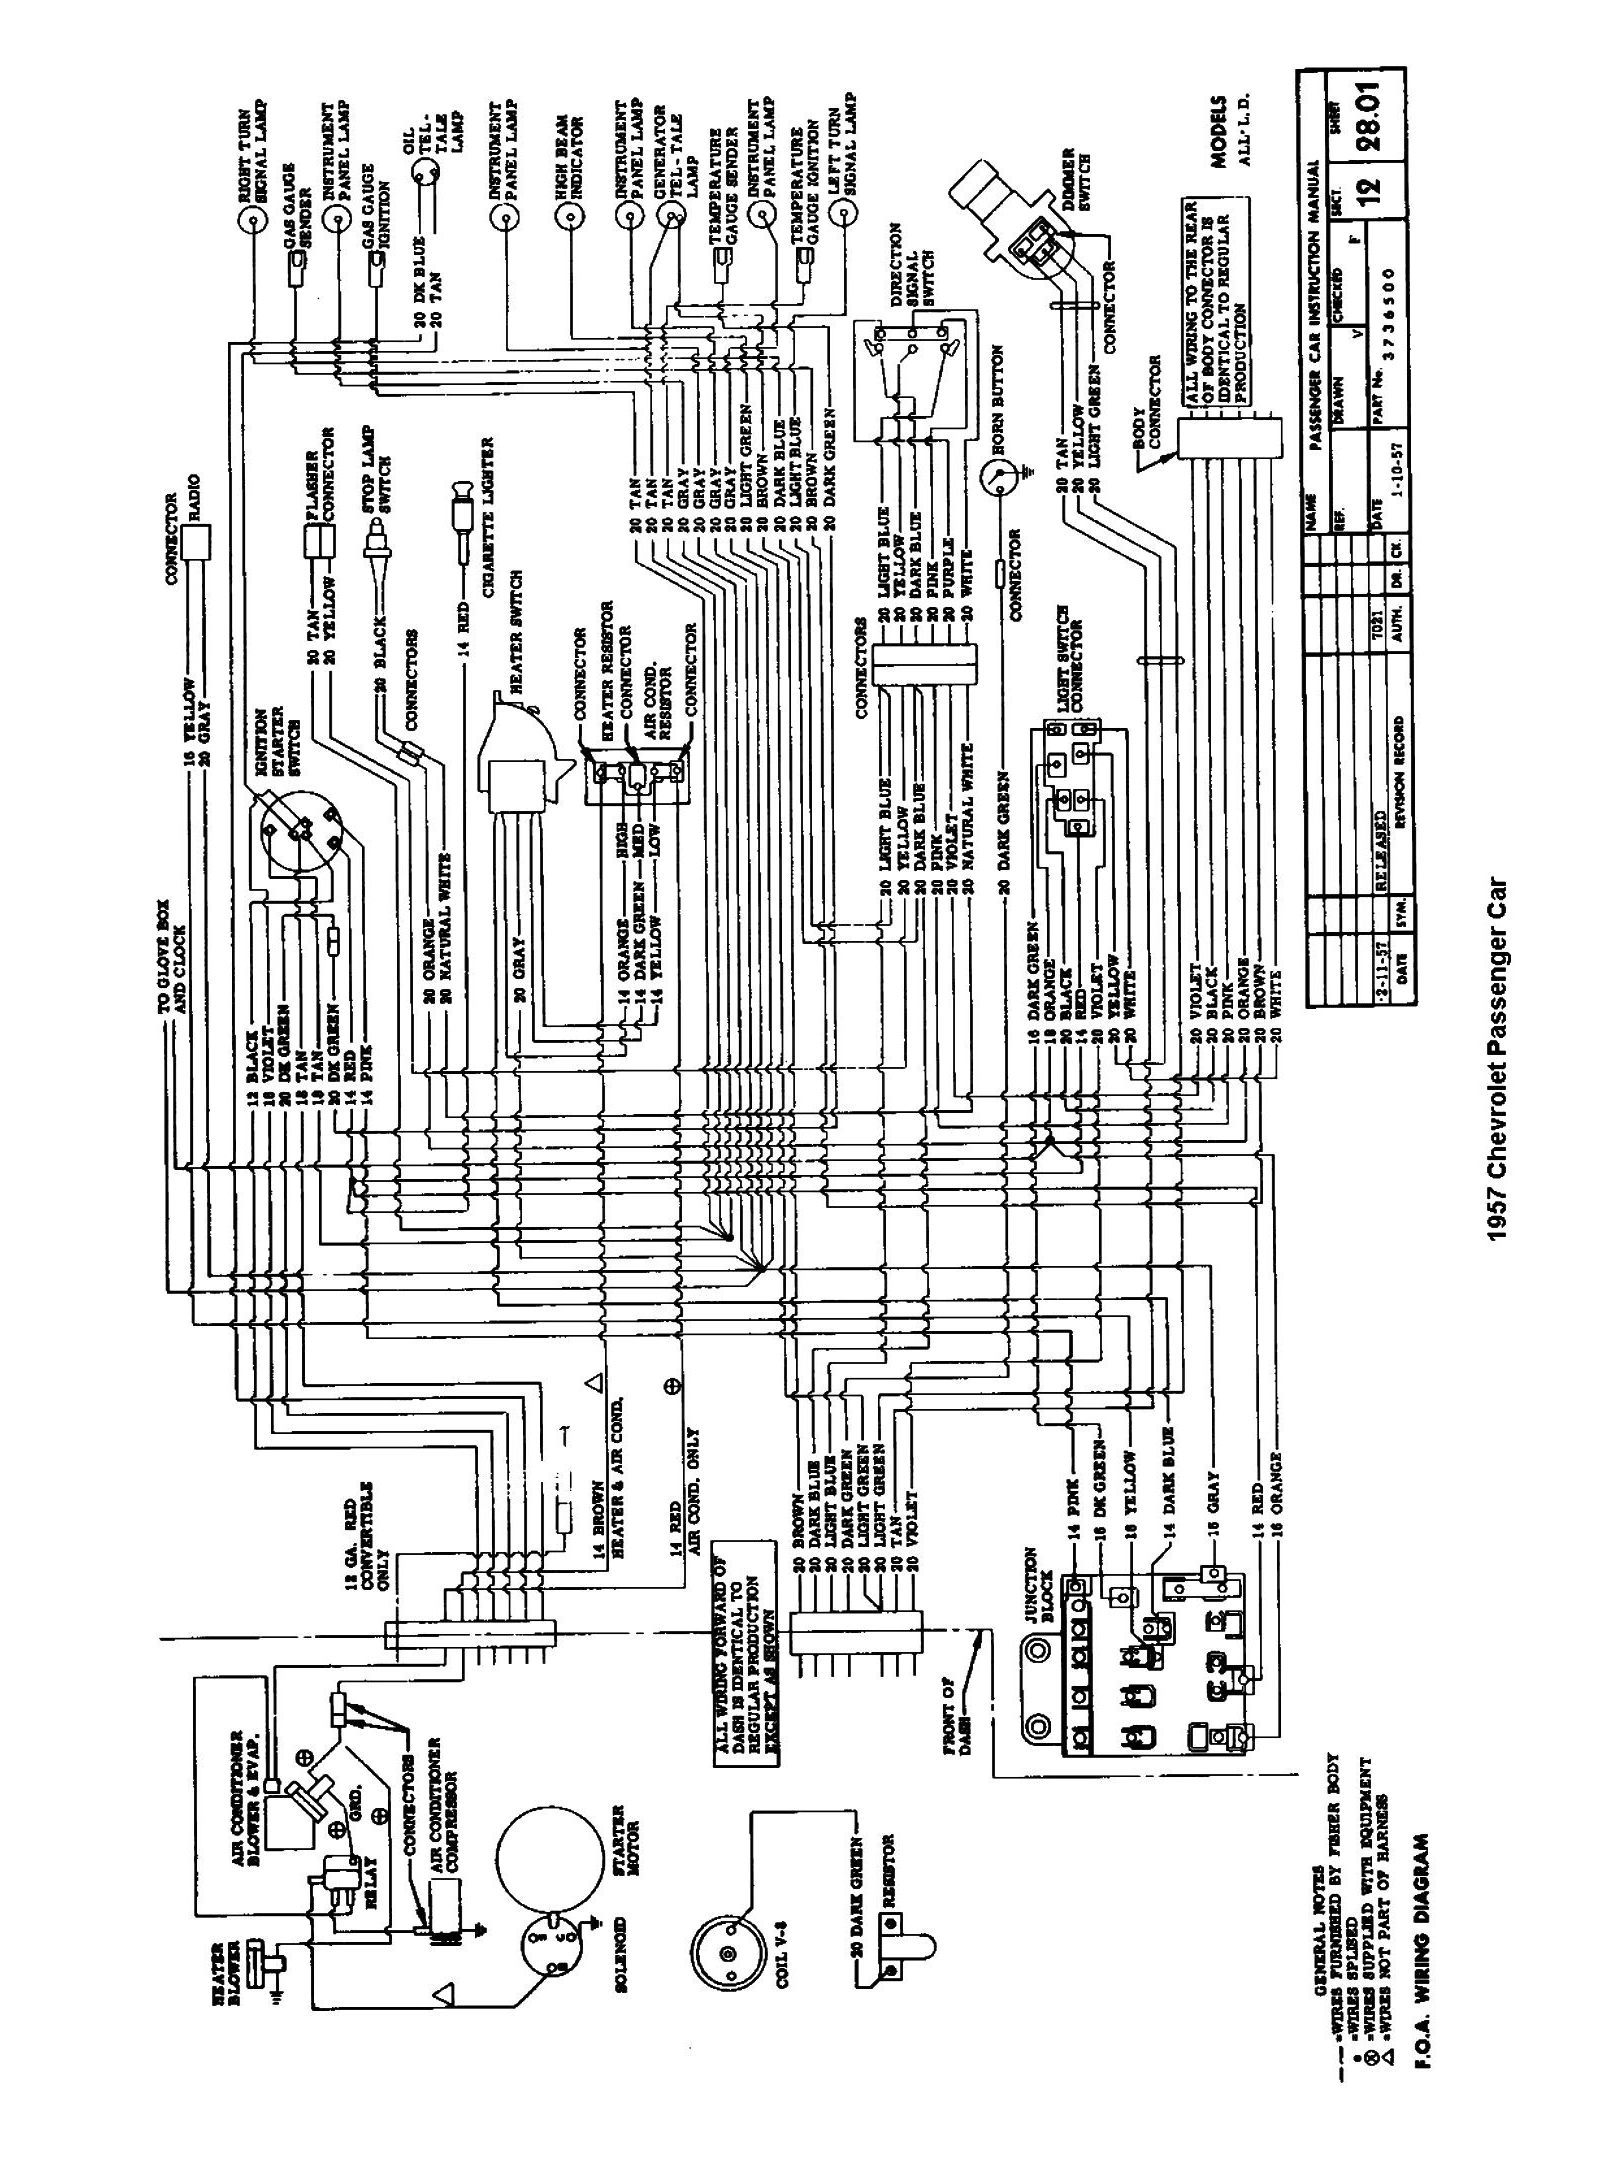 Chevy Wiring Diagrams 1966 Mustang Heater Wiring Diagram 1957 Chevy Heater  Wiring Diagram